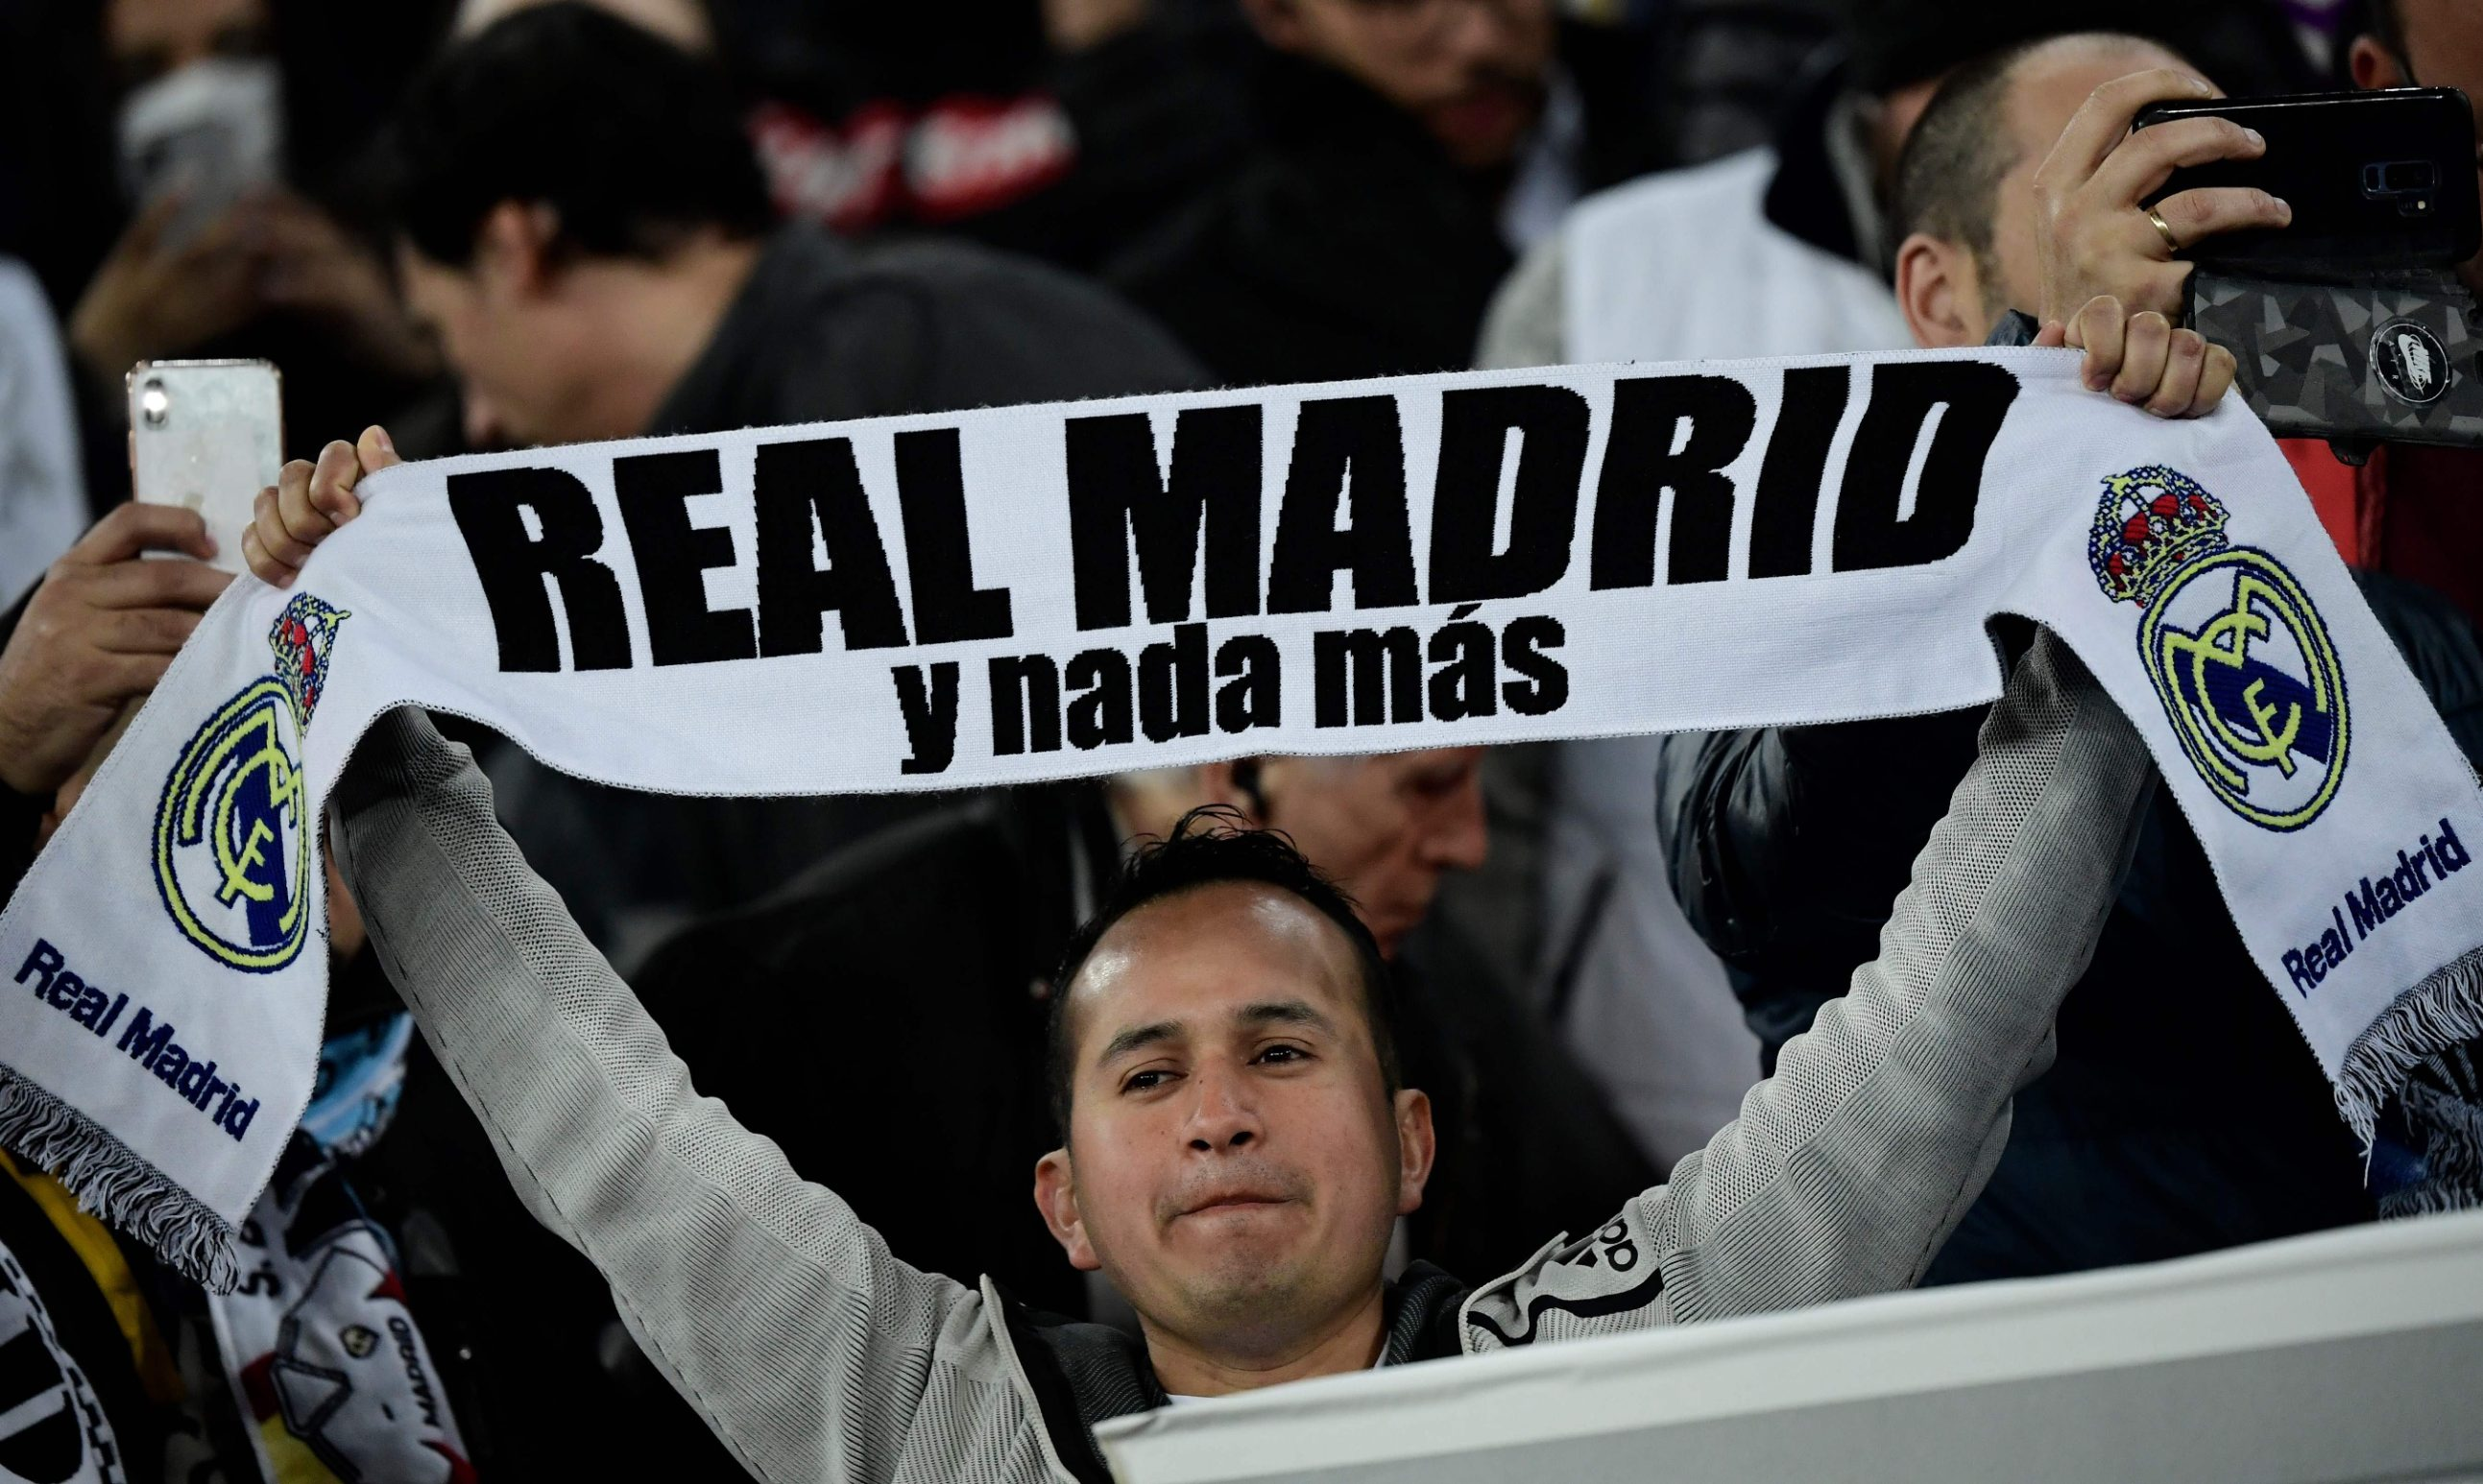 A Real Madrid fan holds up a scarf during the UEFA Champions League round of 16 first-leg football match between Real Madrid CF and Manchester City at the Santiago Bernabeu stadium in Madrid on February 26, 2020. (Photo by JAVIER SORIANO / AFP)